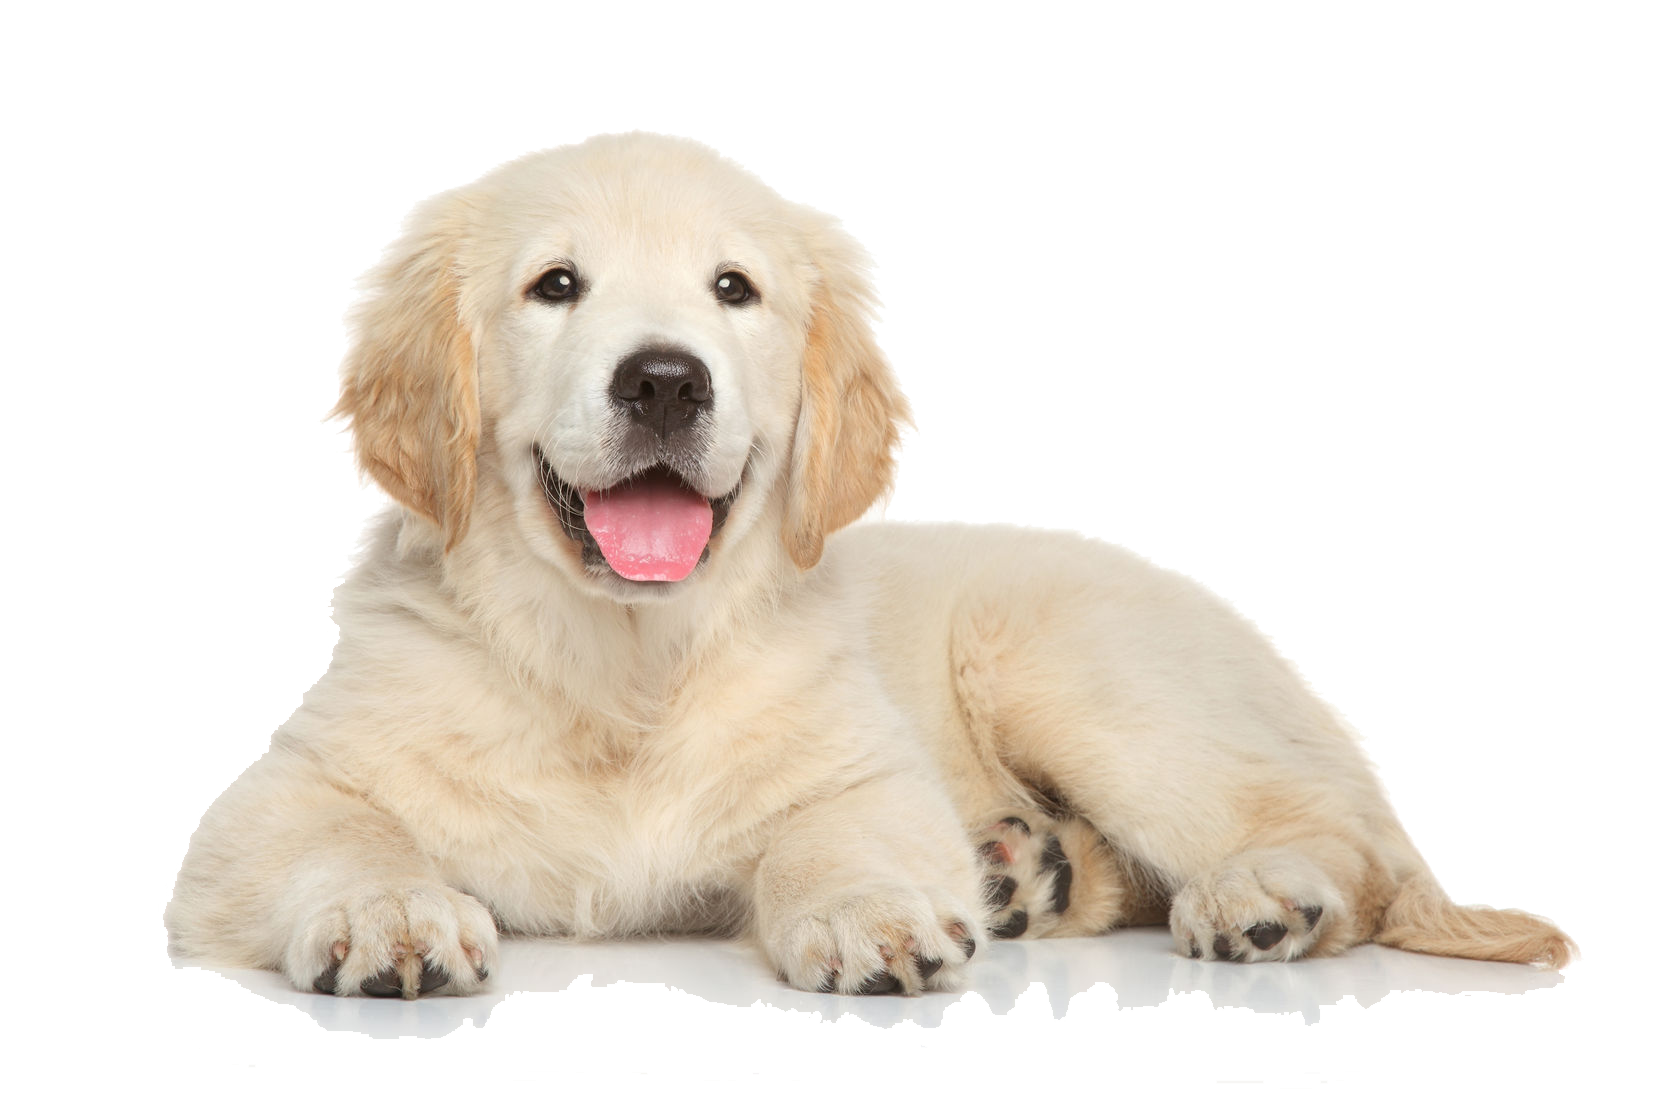 Husky clipart real puppy. Png images transparent free